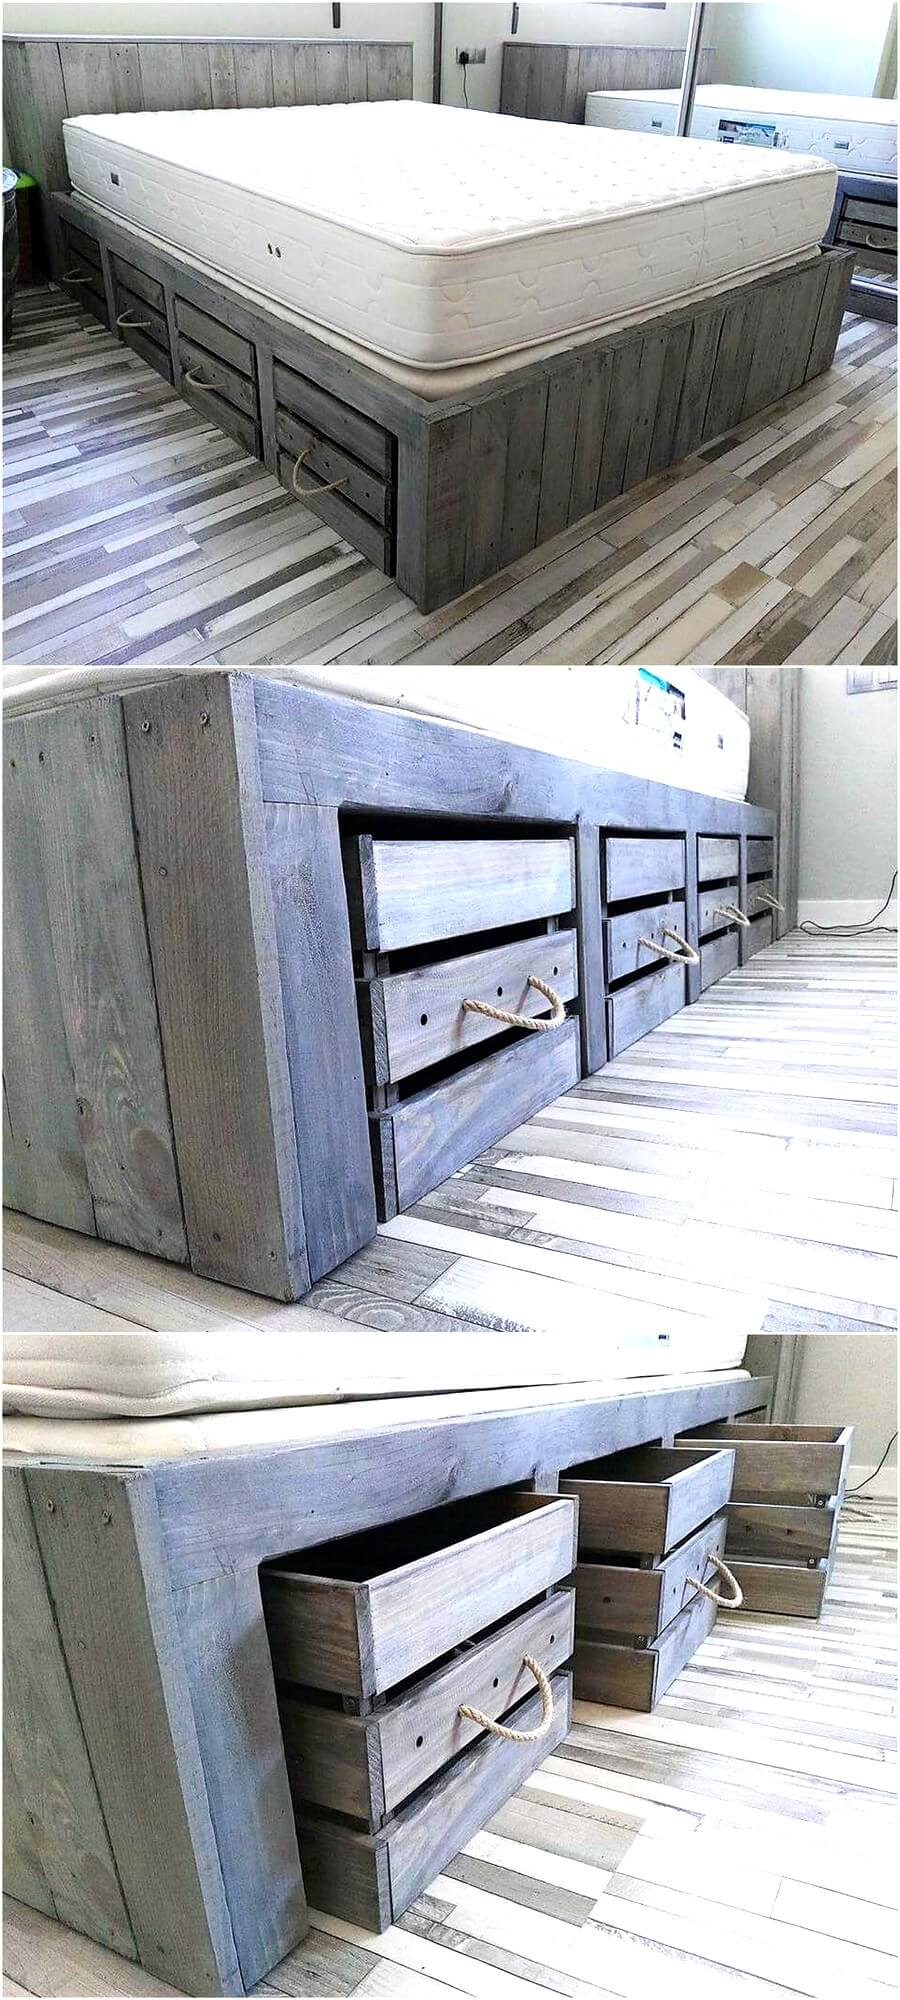 Rustic Look Giant Pallet Bed With Storage